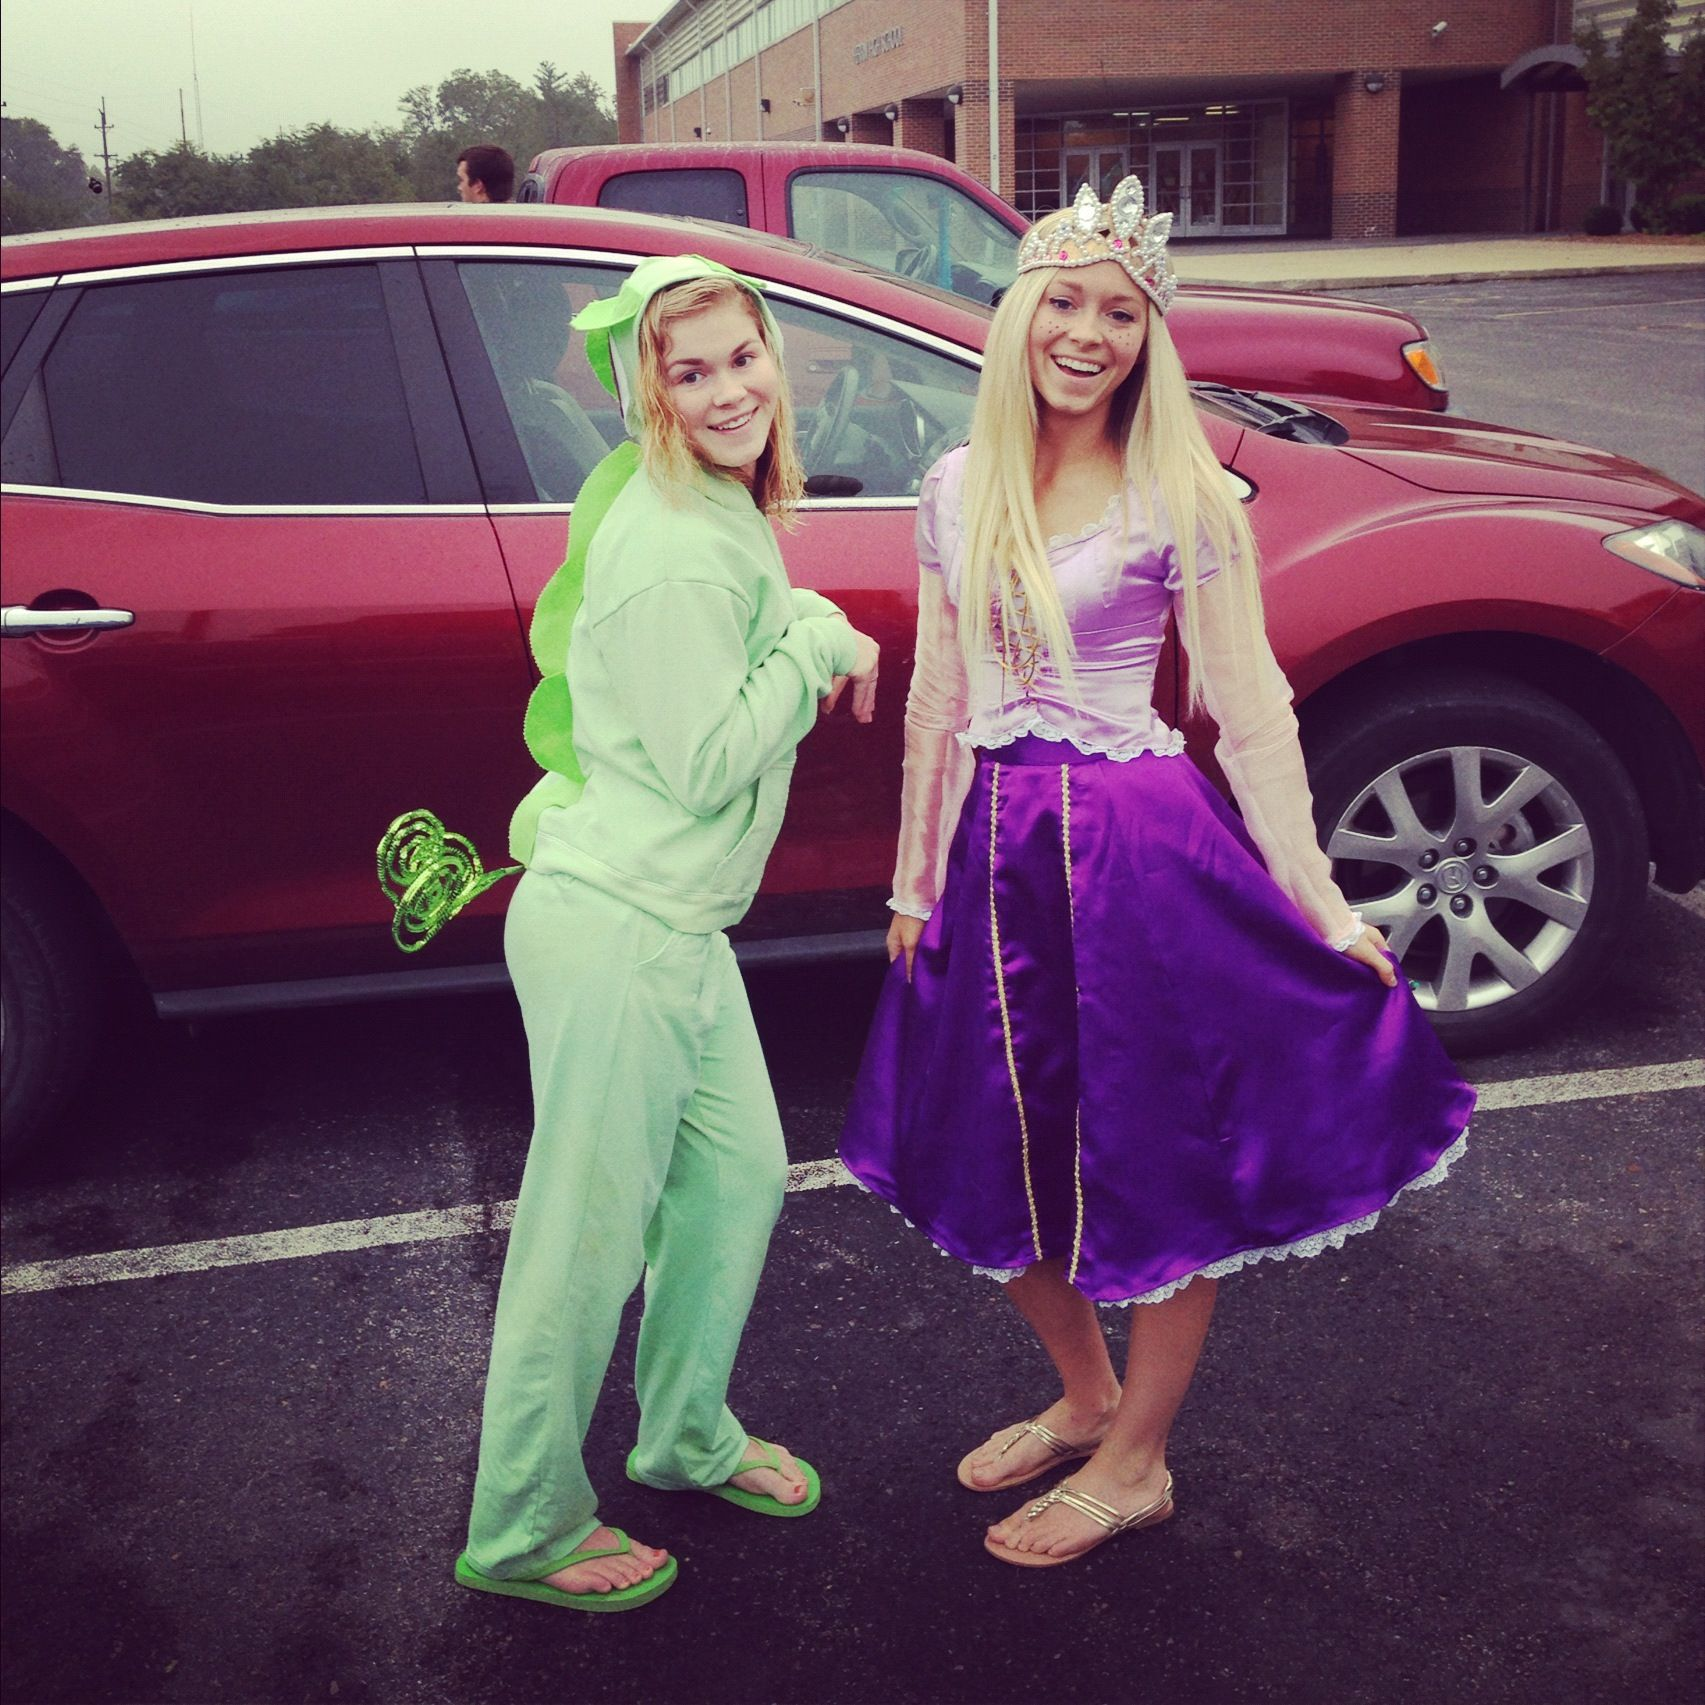 Rapunzel And Pascal Tanlged Disneyday Rapunzel Costumes For Teenage Girl Rapunzel Costume Duo Halloween Costumes